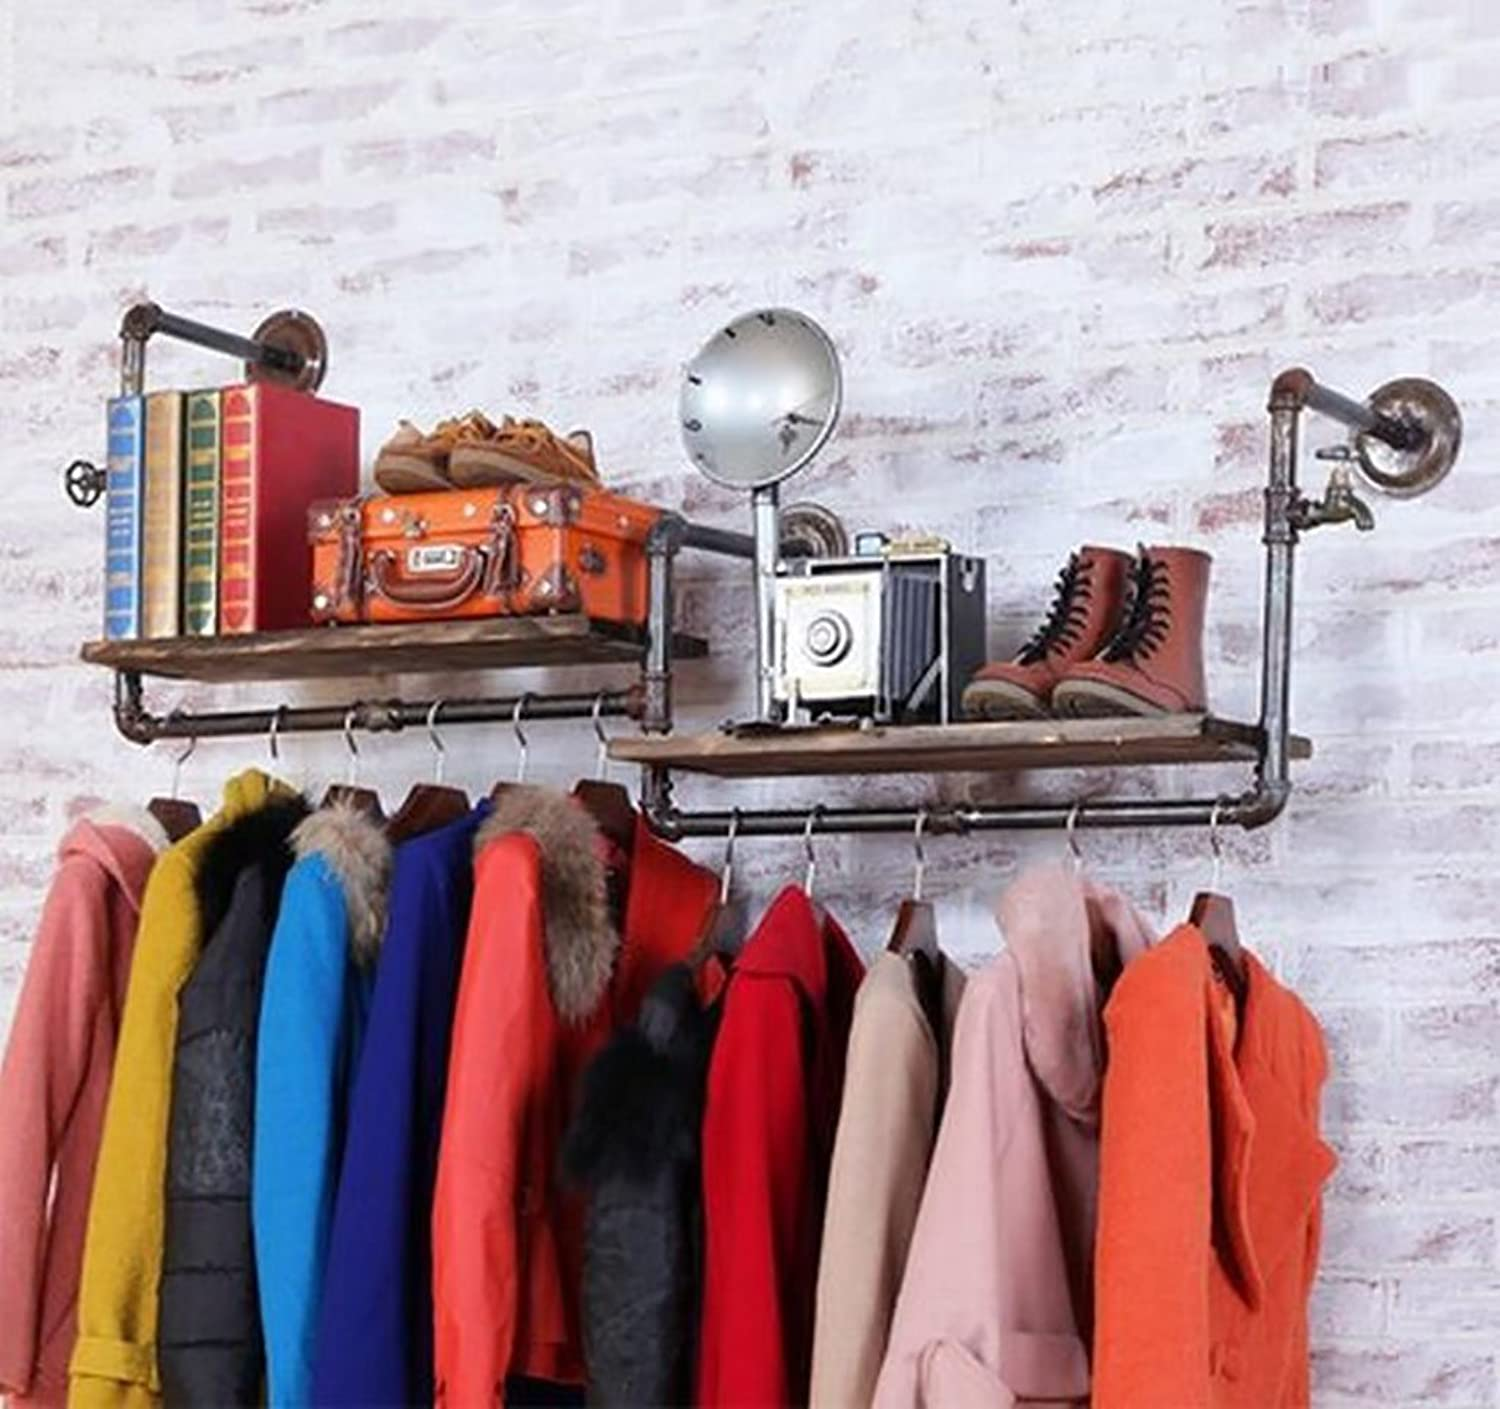 Coat Rack Solid Wood Hanging Clothes Floor-Standing Hangers Single-bar 2 colors 56x46x12cm 22x18.1x4.7 Inch Wall Hanger Haiming (color   Champagne)